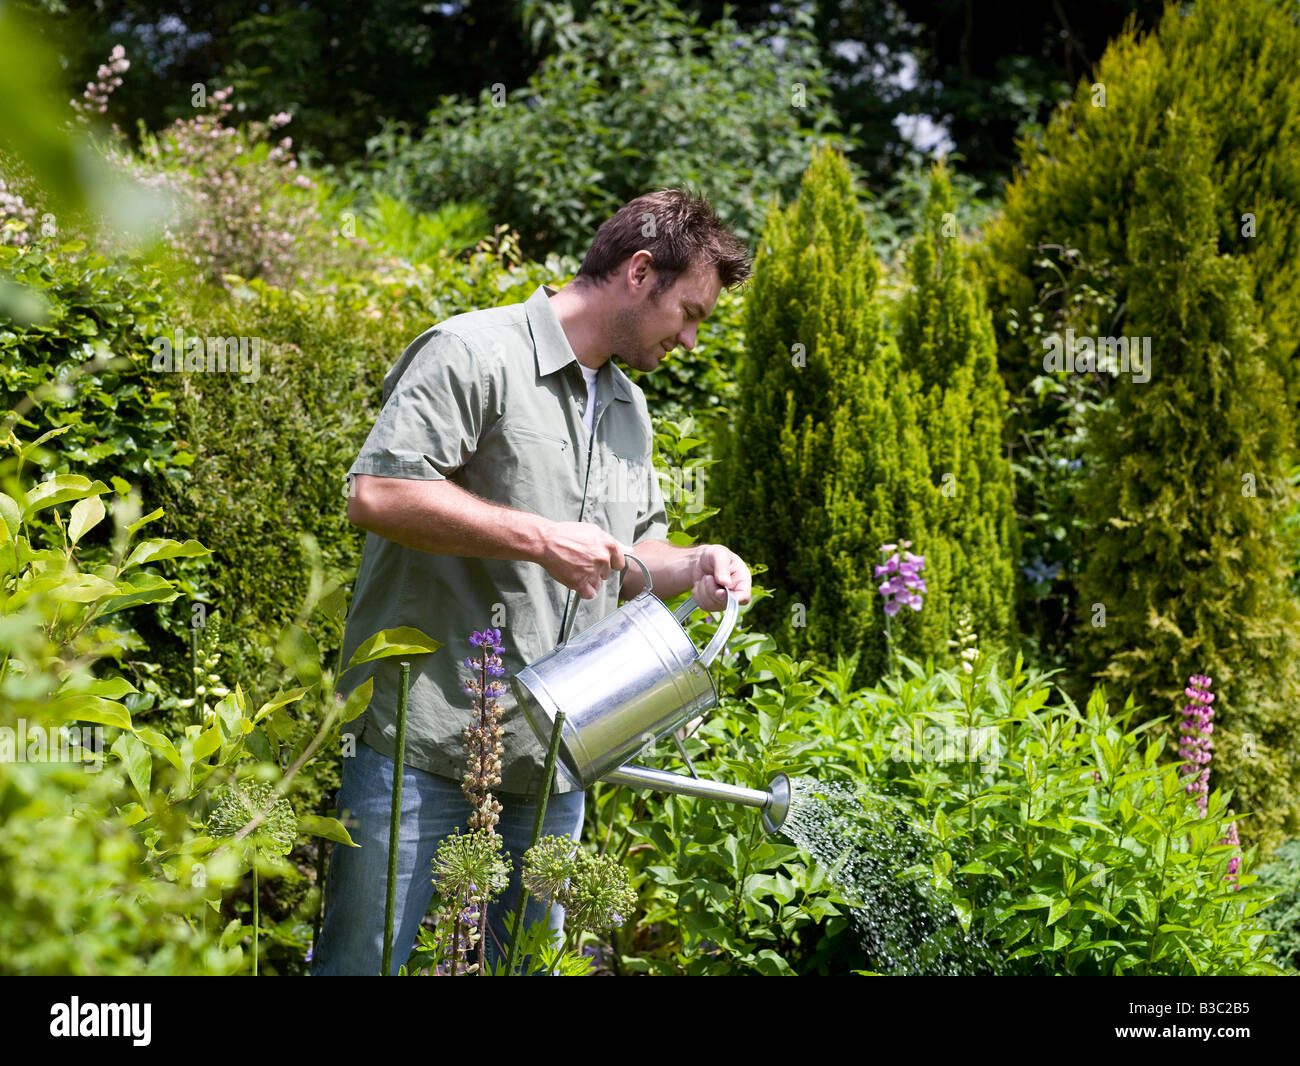 A Man Watering The Plants In A Garden Stock Photo 19319641 Alamy